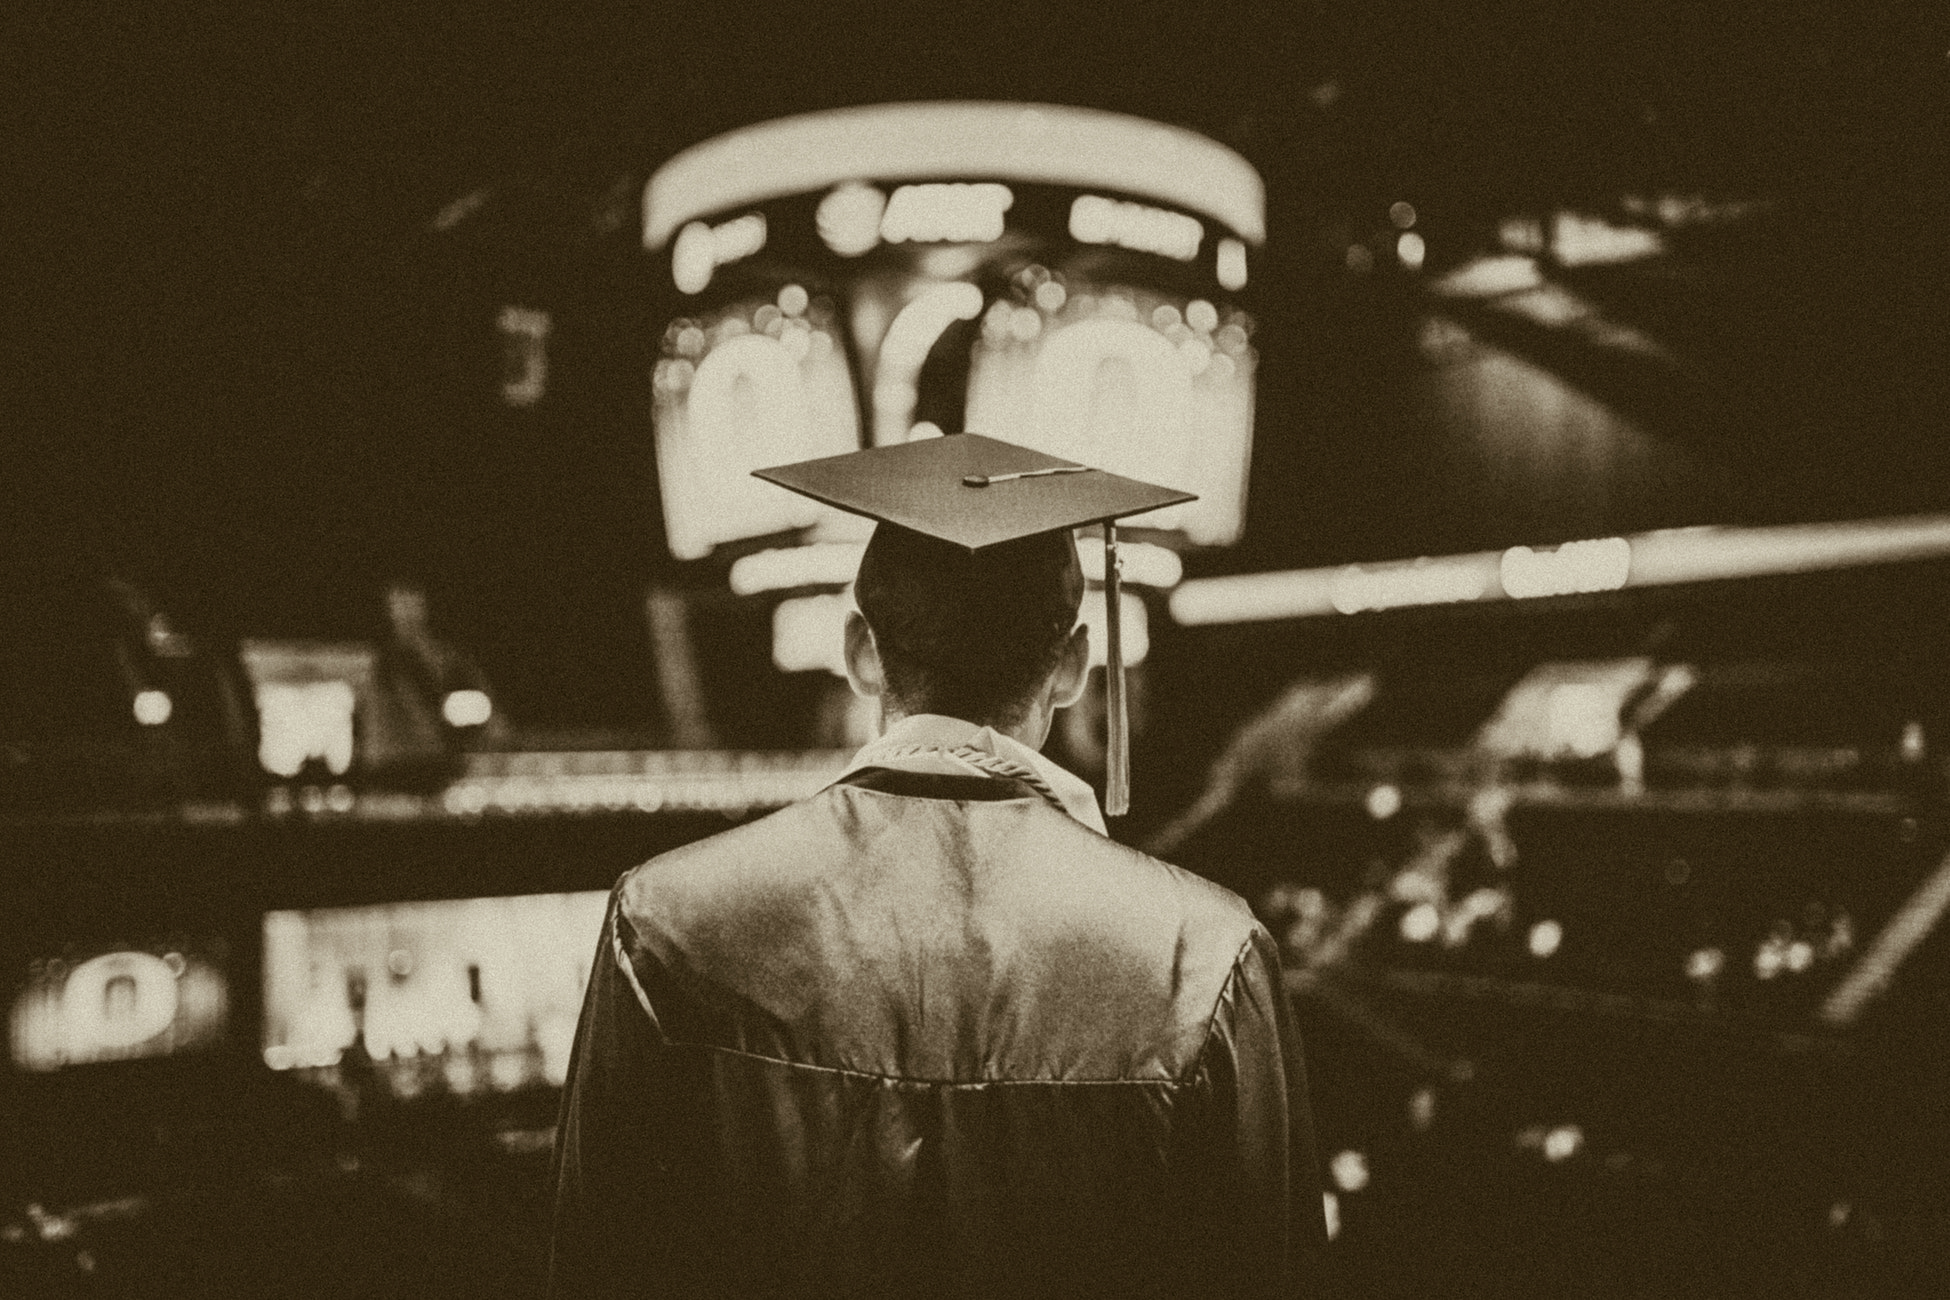 black and white photo. guy in graduation cap and toga facing a stadium